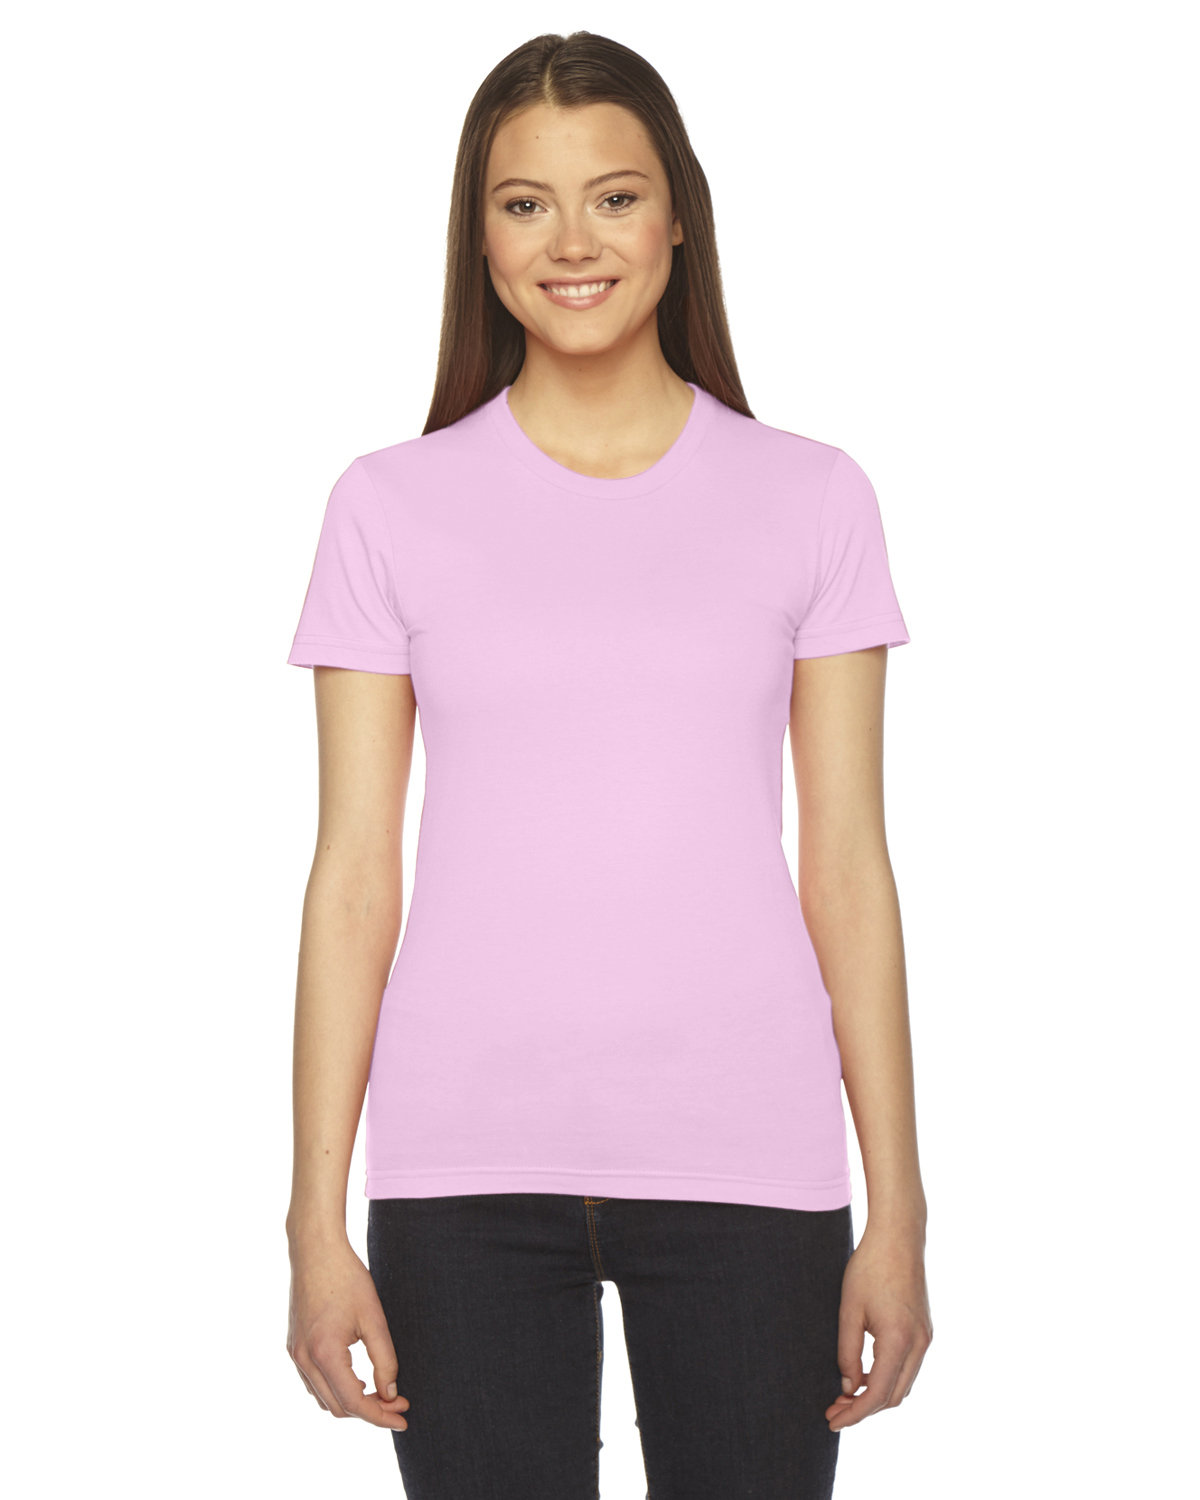 American Apparel Ladies' Fine Jersey Short-Sleeve T-Shirt PINK